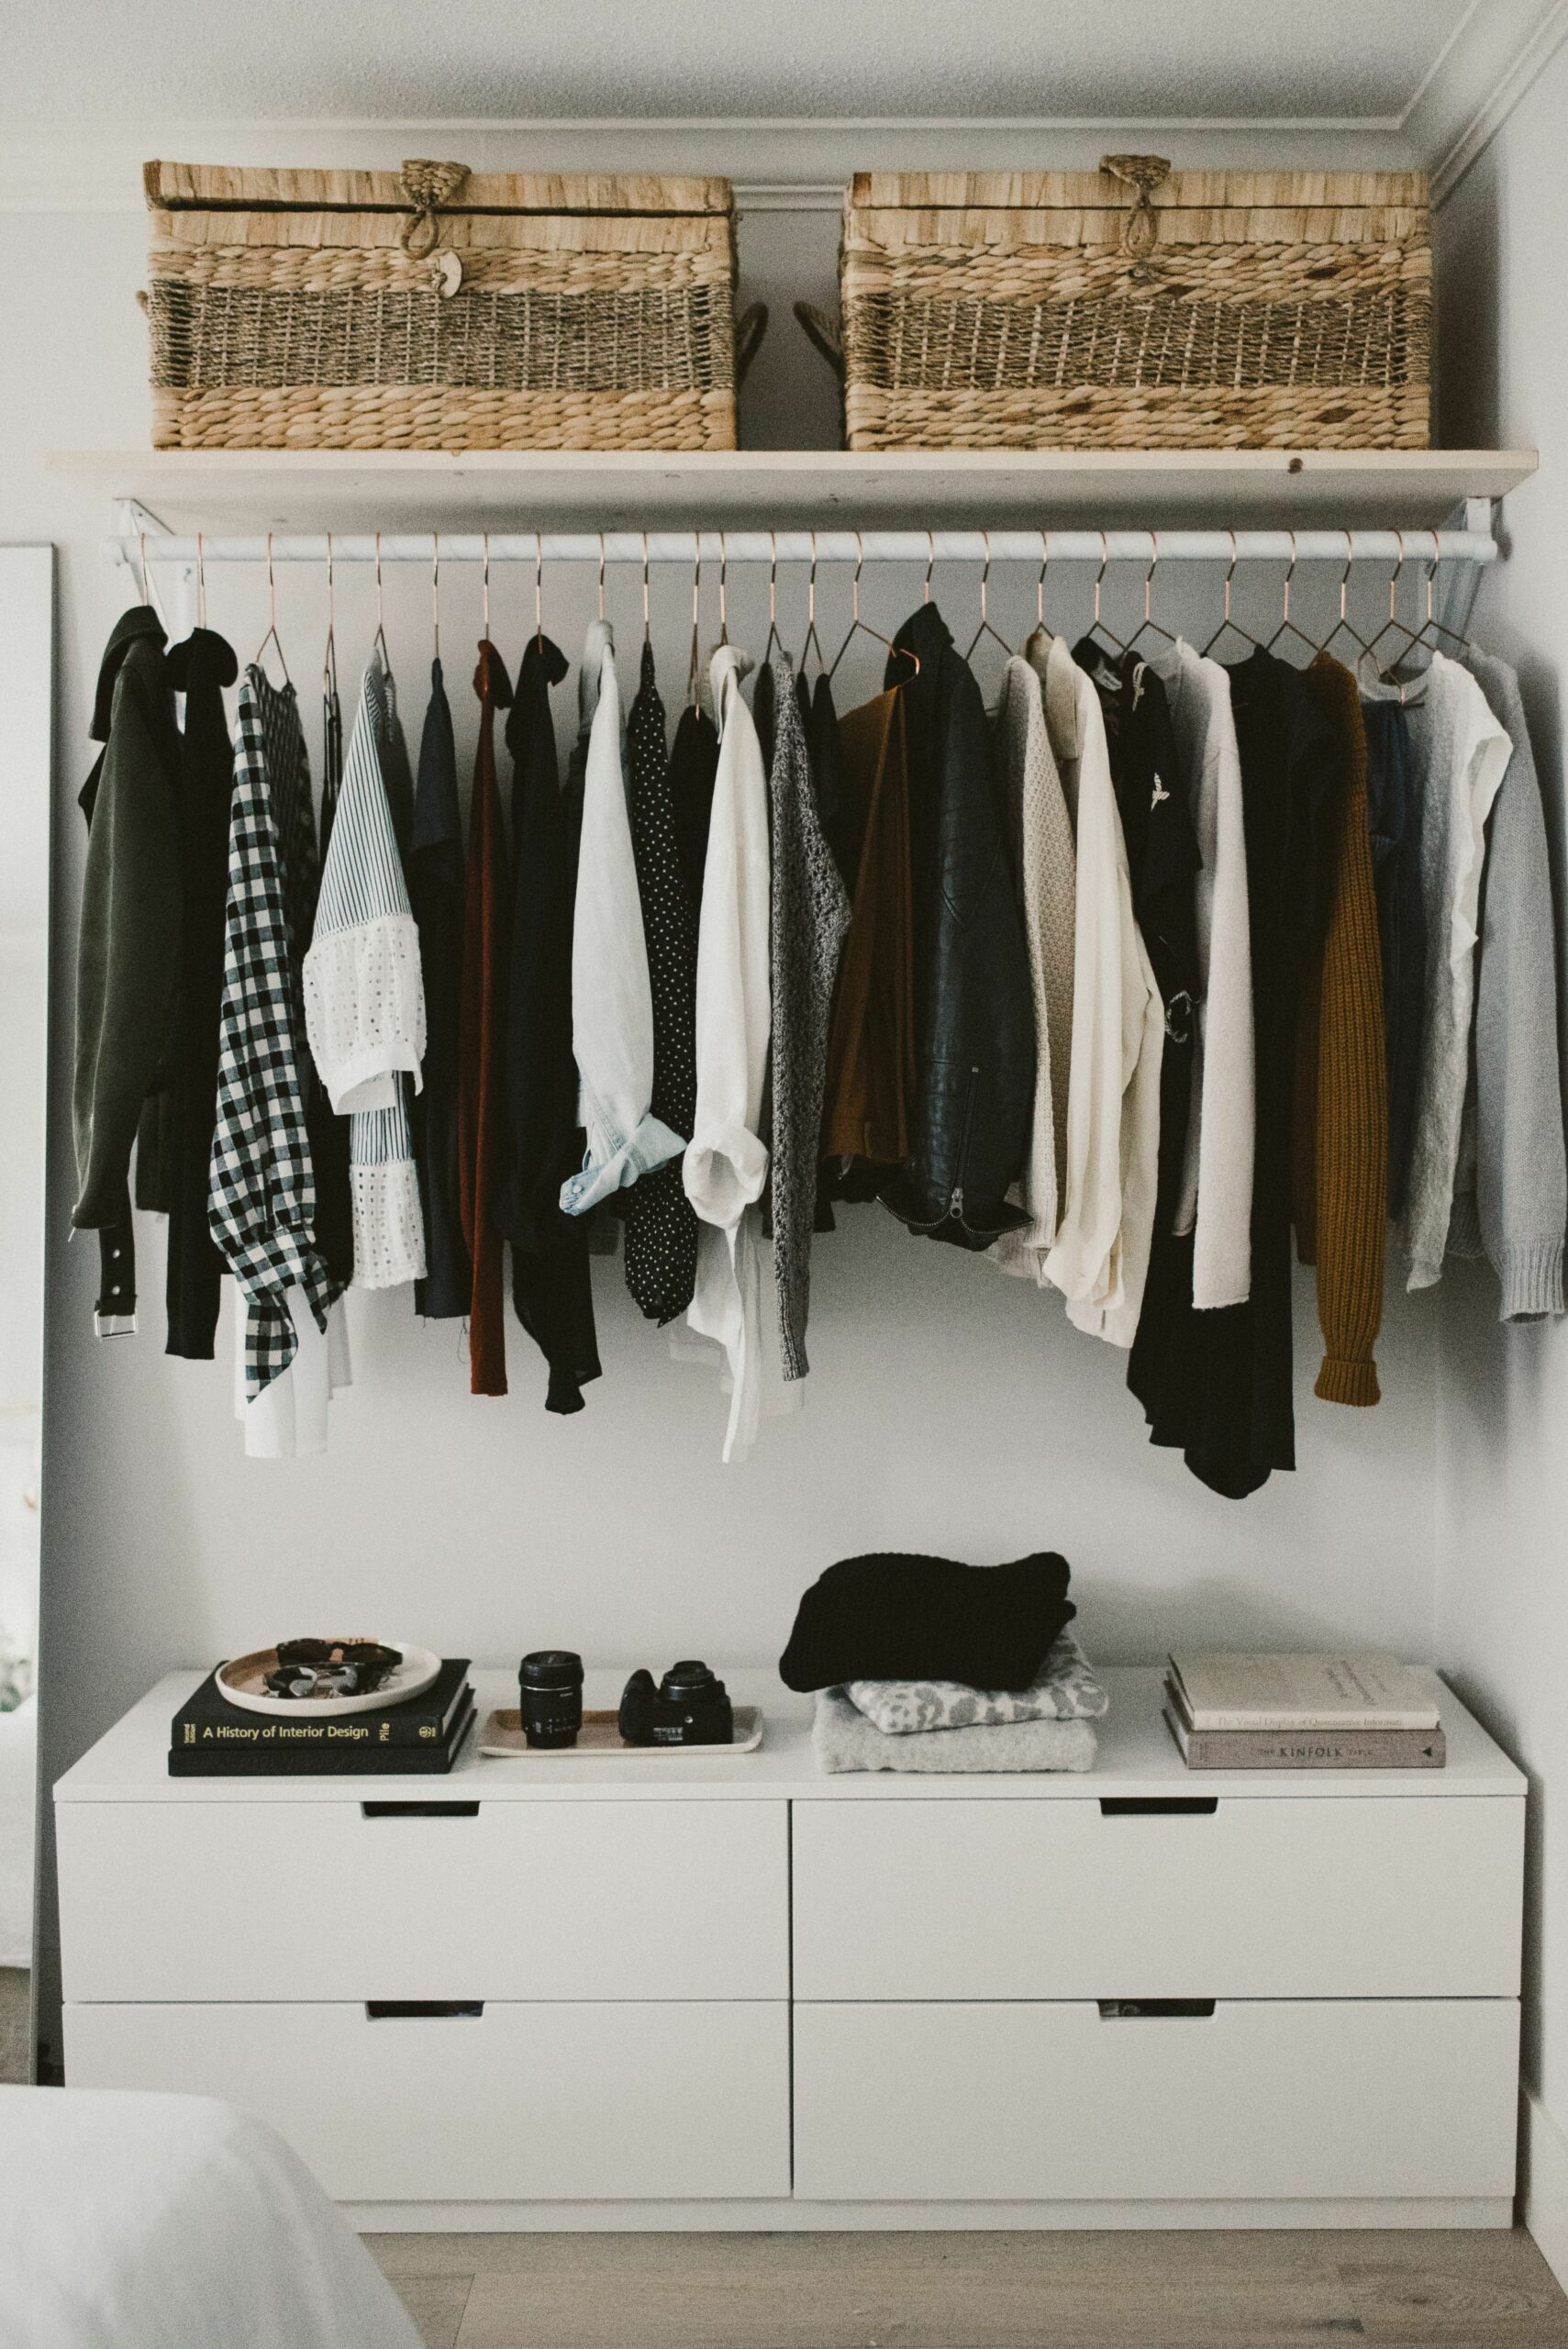 11 Lovely Open Closet Ideas For Small Spaces | Small bedroom decor ..